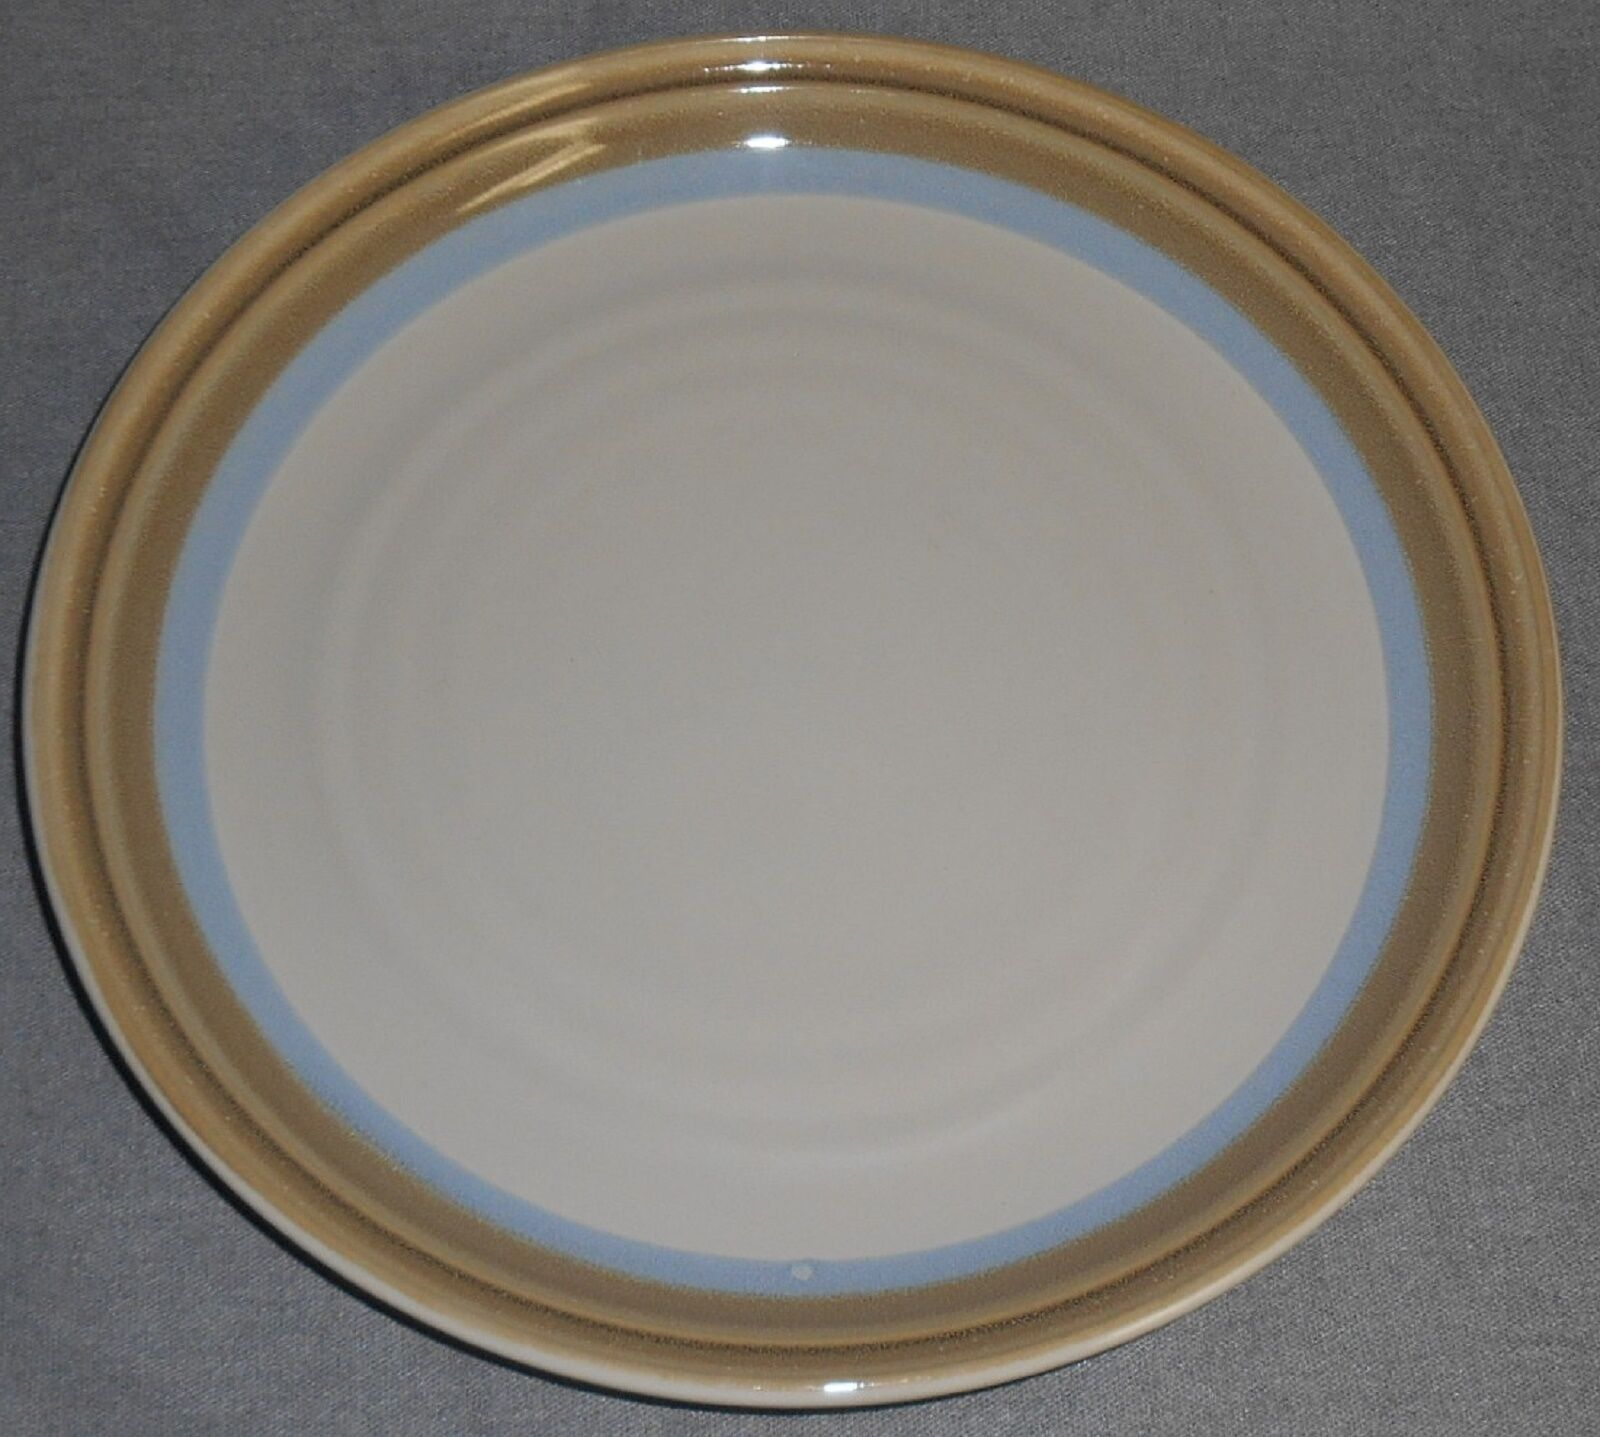 Primary image for Noritake Stoneware PAINTED DESERT PATTERN Round Platter or Chop Plate